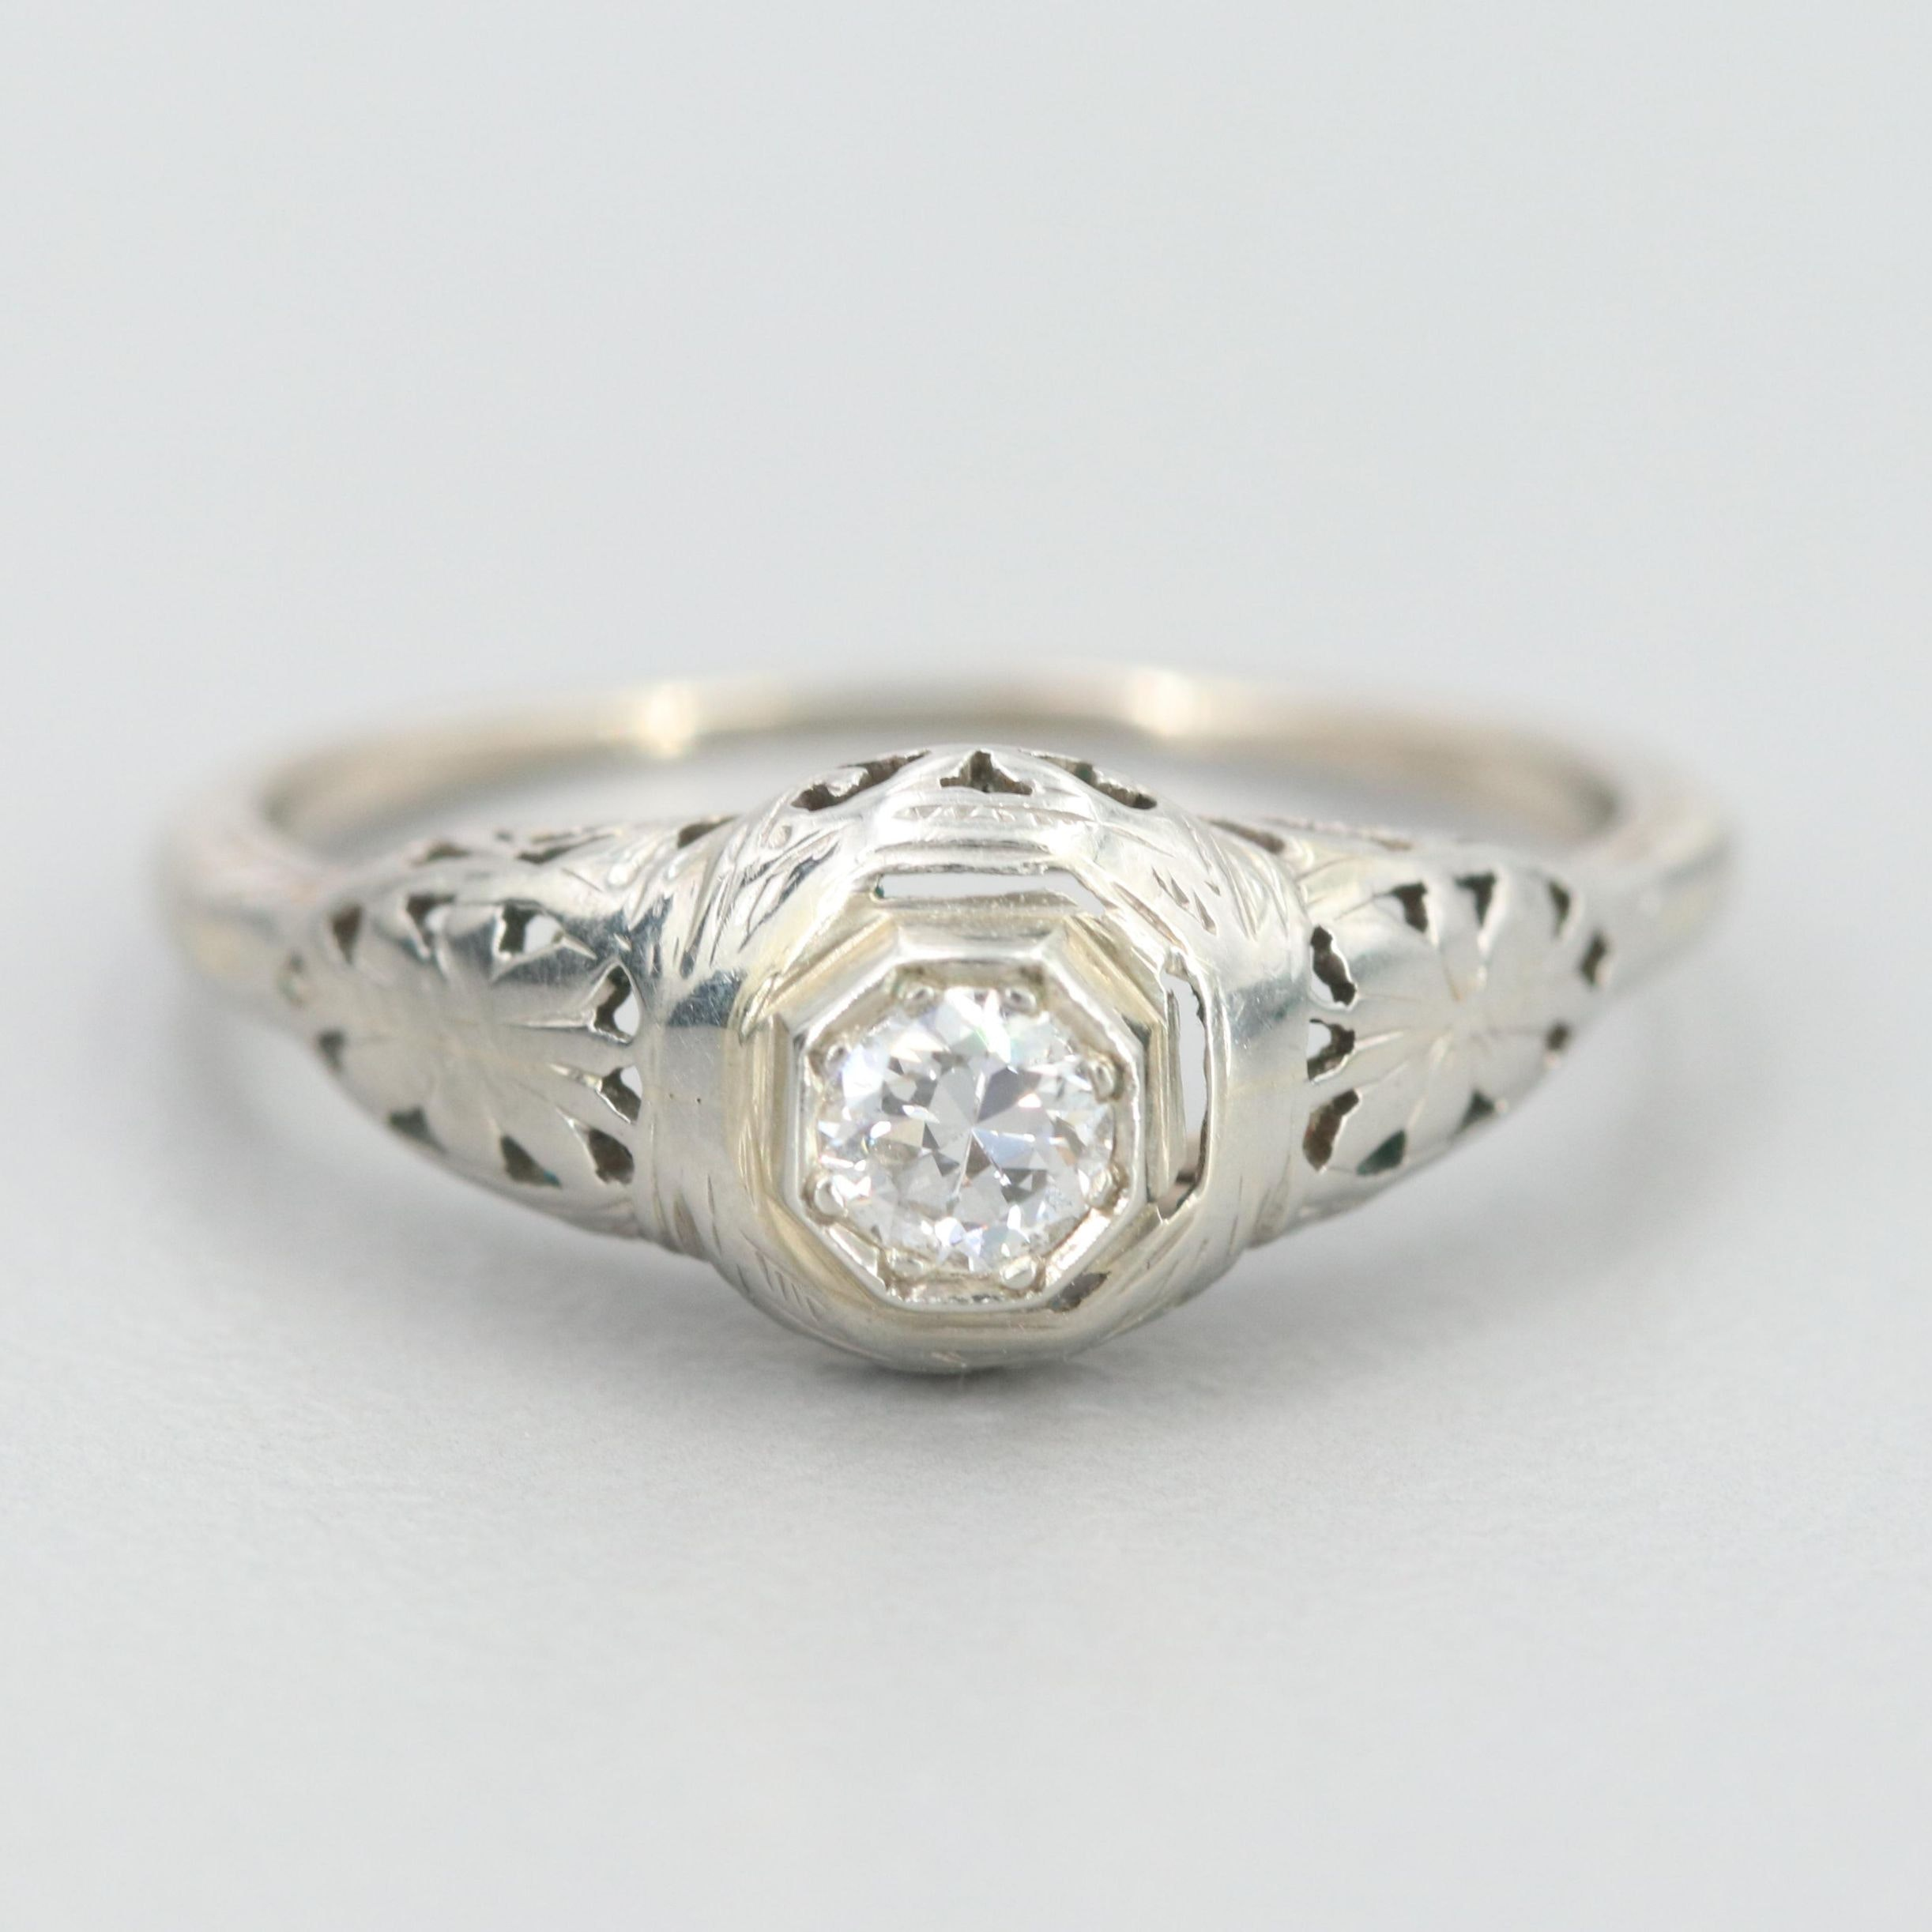 Edwardian 10K White Gold Diamond Ring